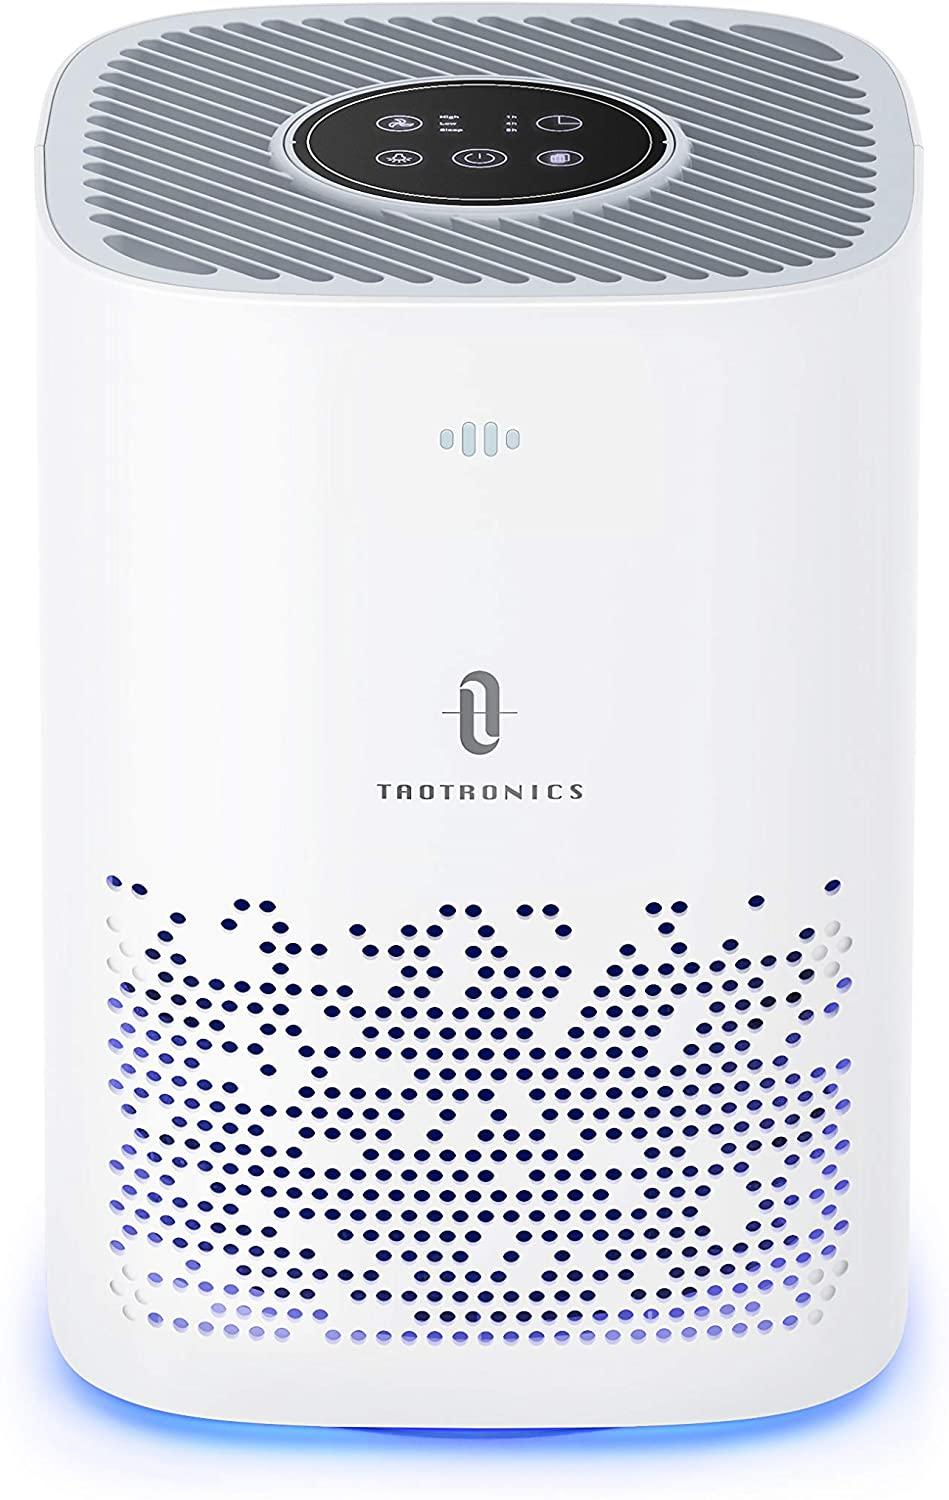 "Clean indoor air is a bigger priority now than ever before, which is likely why this top-rated air purifier became one of readers' top picks of the month. <br><em><strong>SHOP IT: </strong></em><a href=""https://amzn.to/2Ylhgo7"" rel=""nofollow noopener"" target=""_blank"" data-ylk=""slk:Amazon, $130"" class=""link rapid-noclick-resp""><em><strong>Amazon, $130</strong></em></a>"